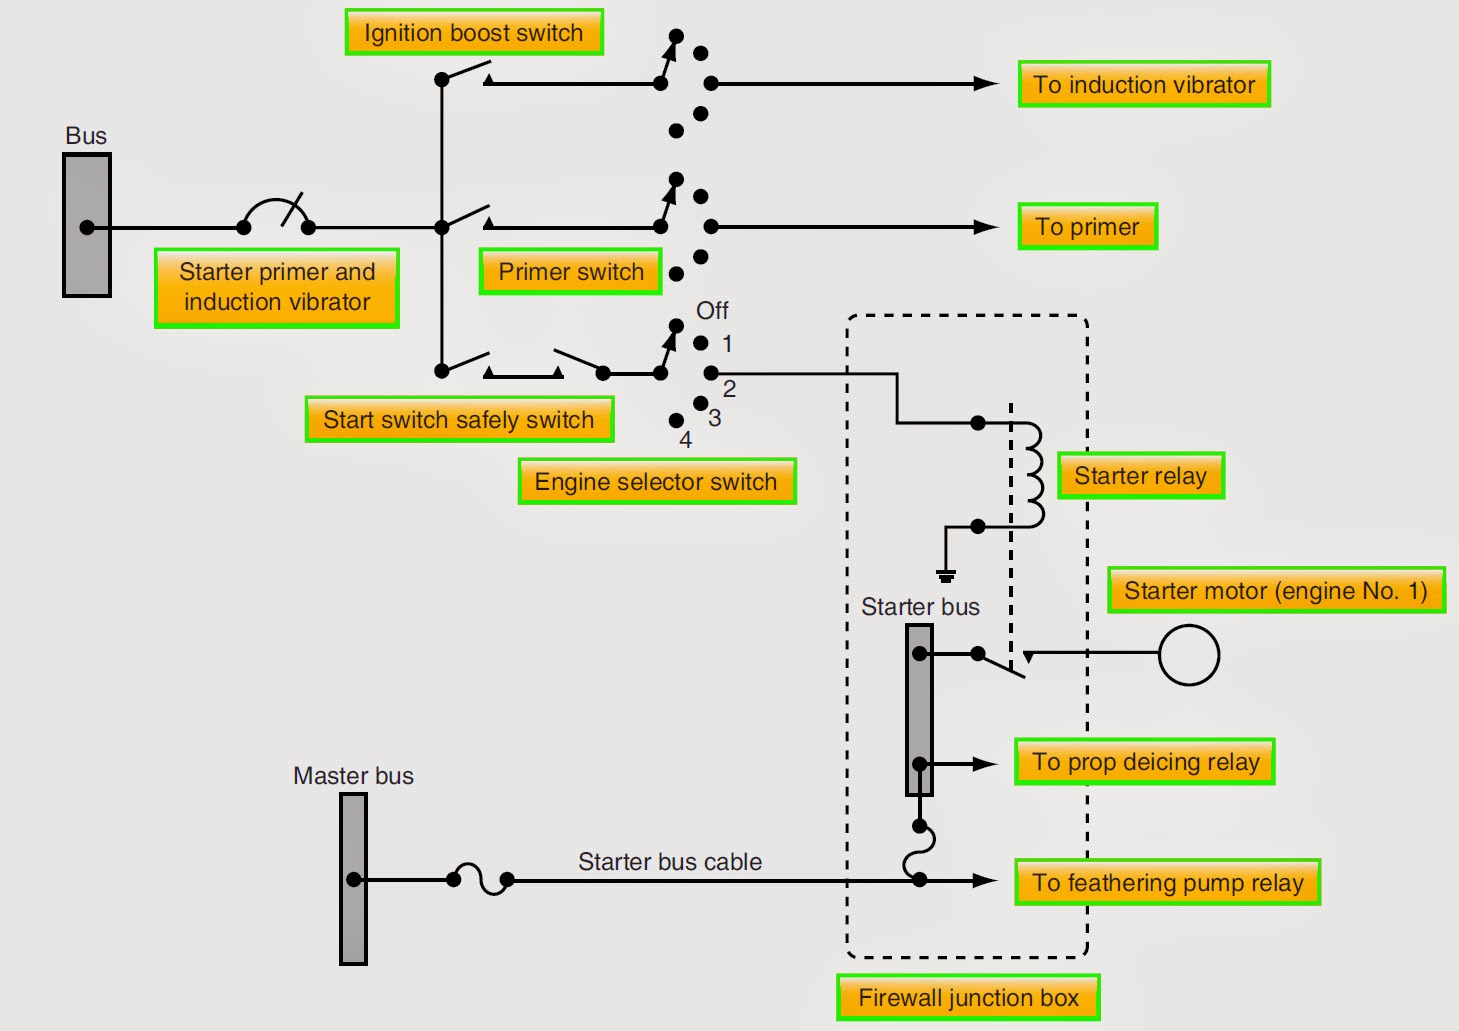 aircraft starter relay internal wiring diagram   46 wiring